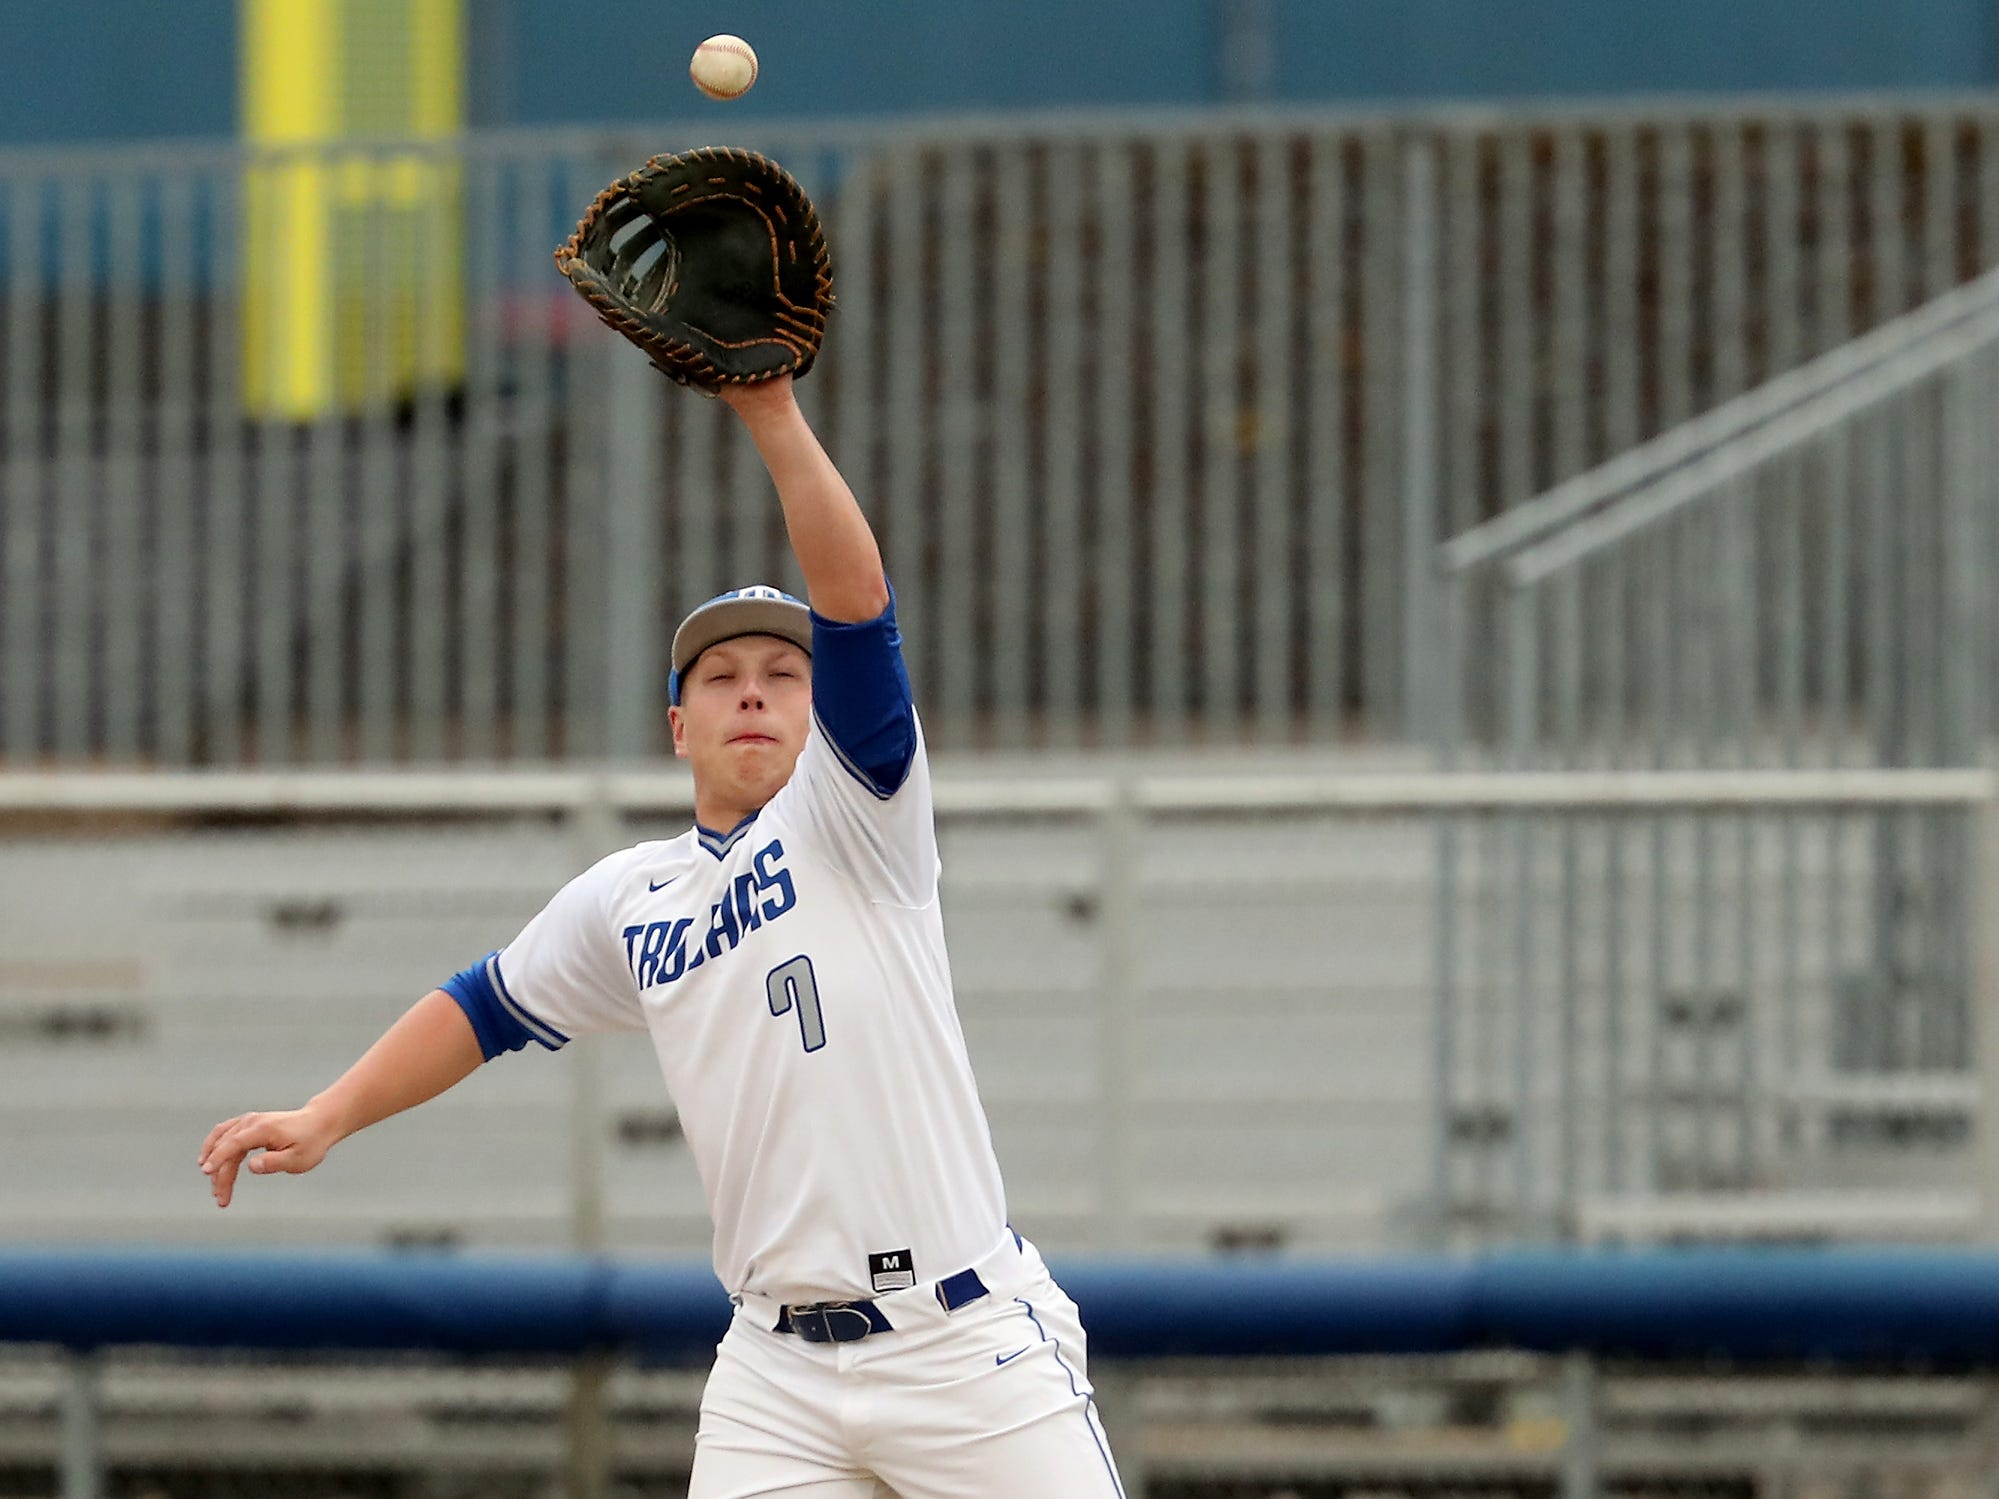 Olympic's Dylan Heino makes a catch at first for an out against North Kitsap Baseball at Gene Lobe Field on Wednesday, March 27, 2019.